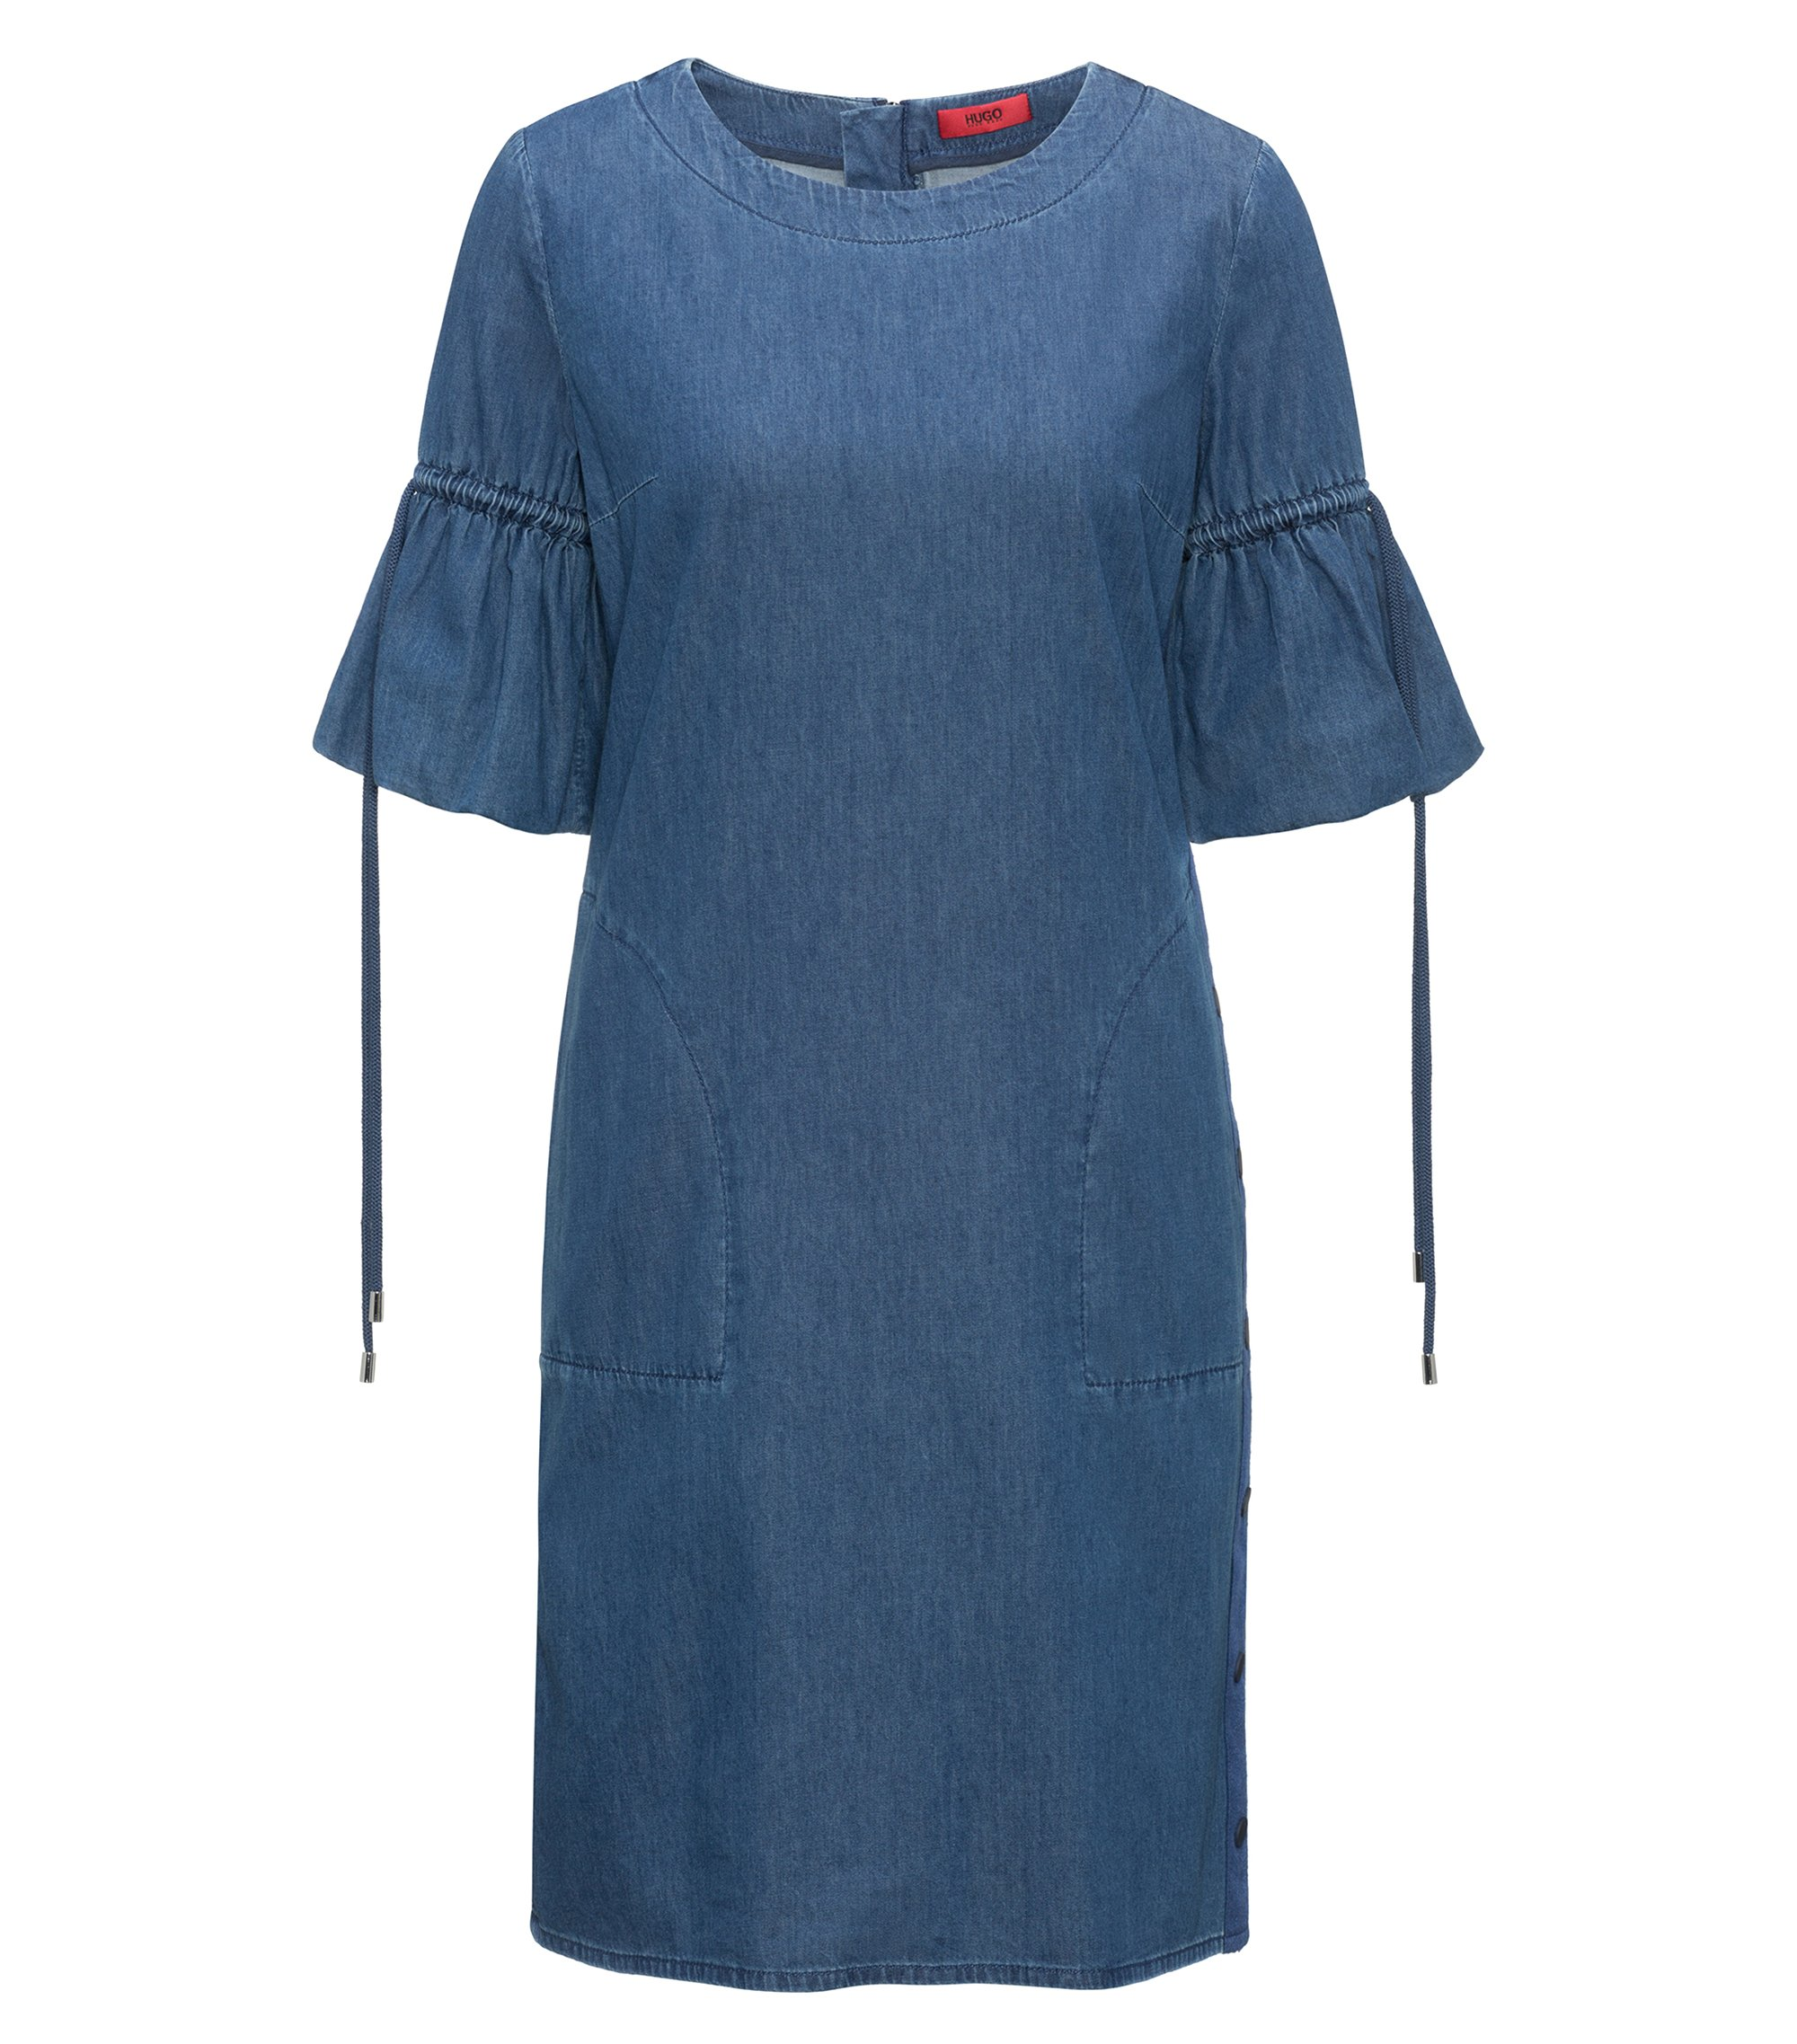 Kleid aus Denim in Washed-Optik mit gerafften Ärmeln, Dunkelblau